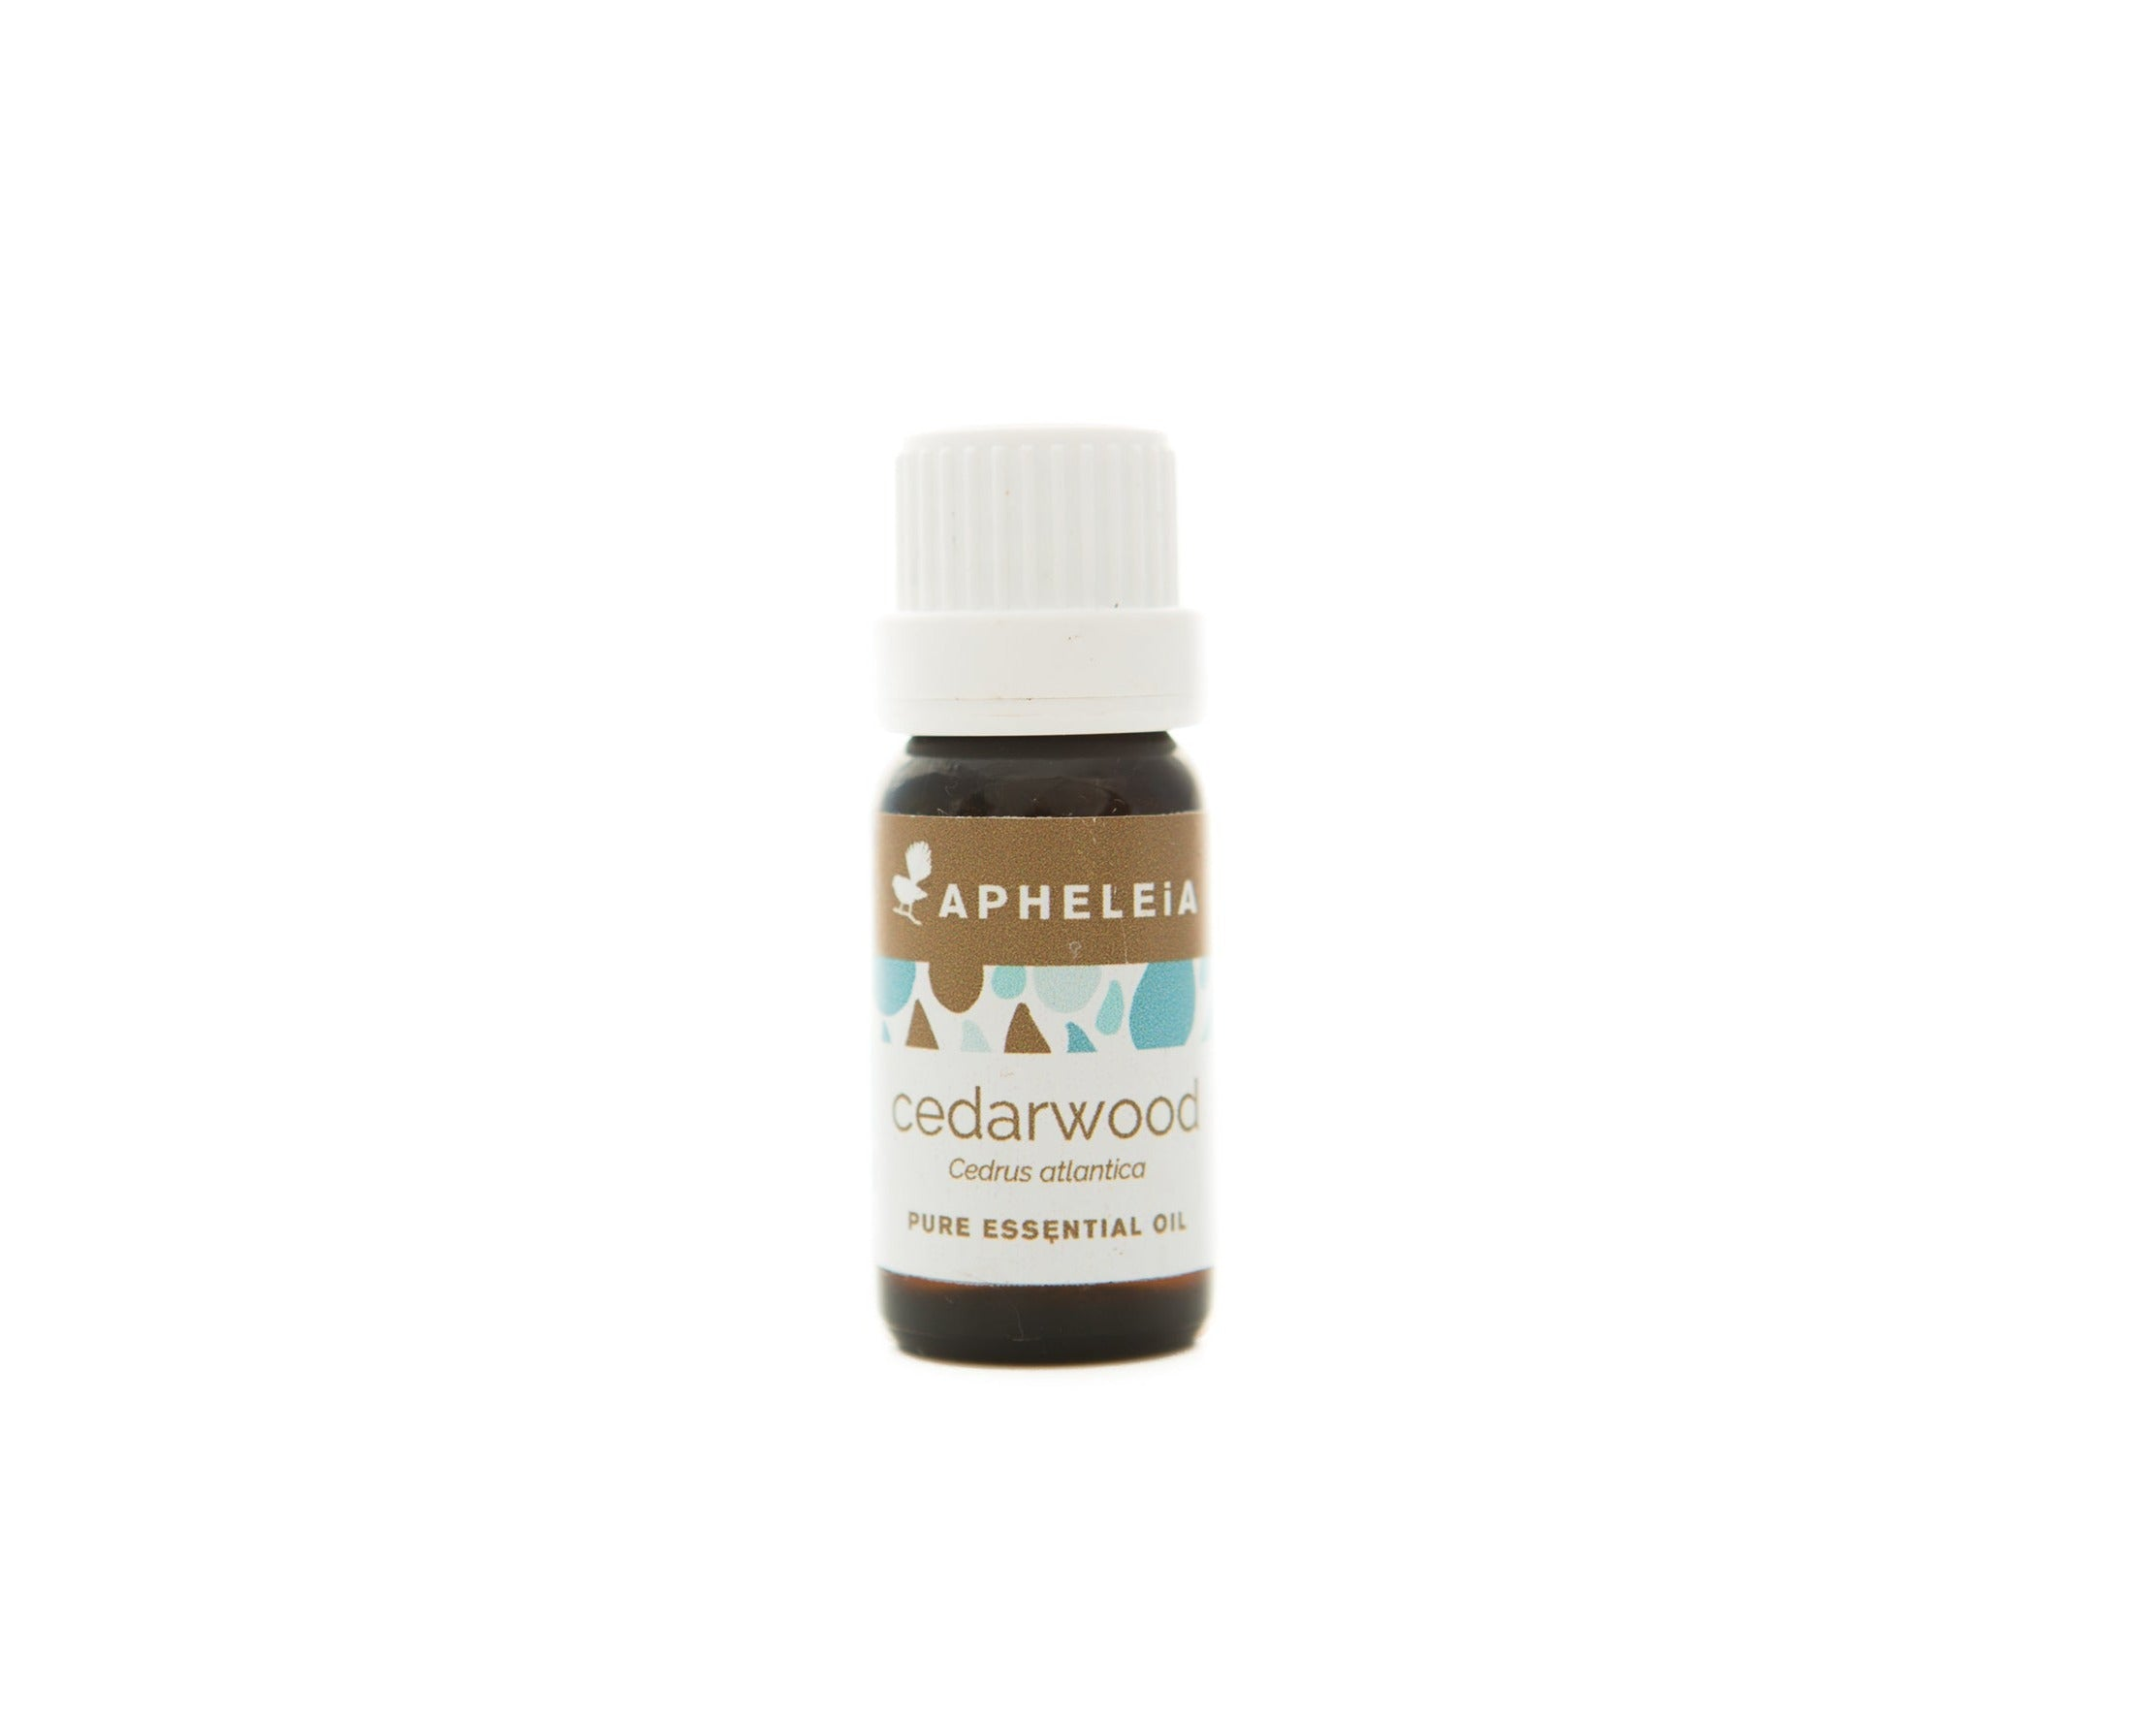 Cedarwood Essential Oil - Apheleia